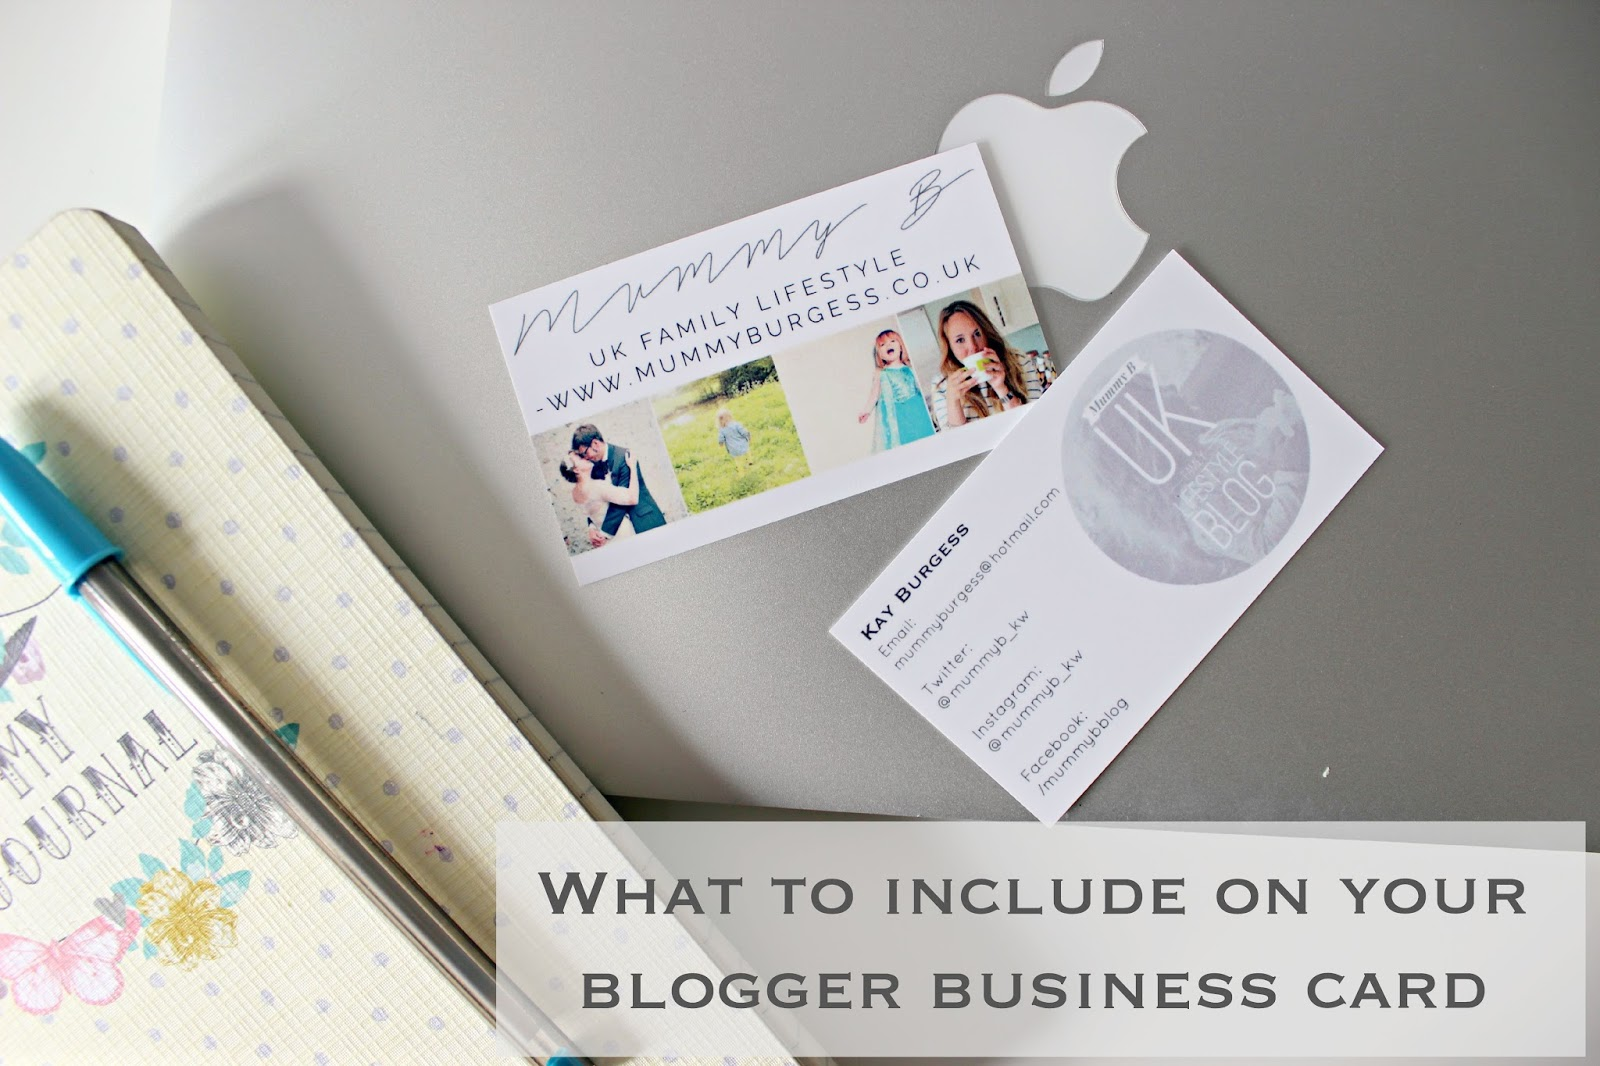 What to include on your blogger business cards | Review | K Elizabeth